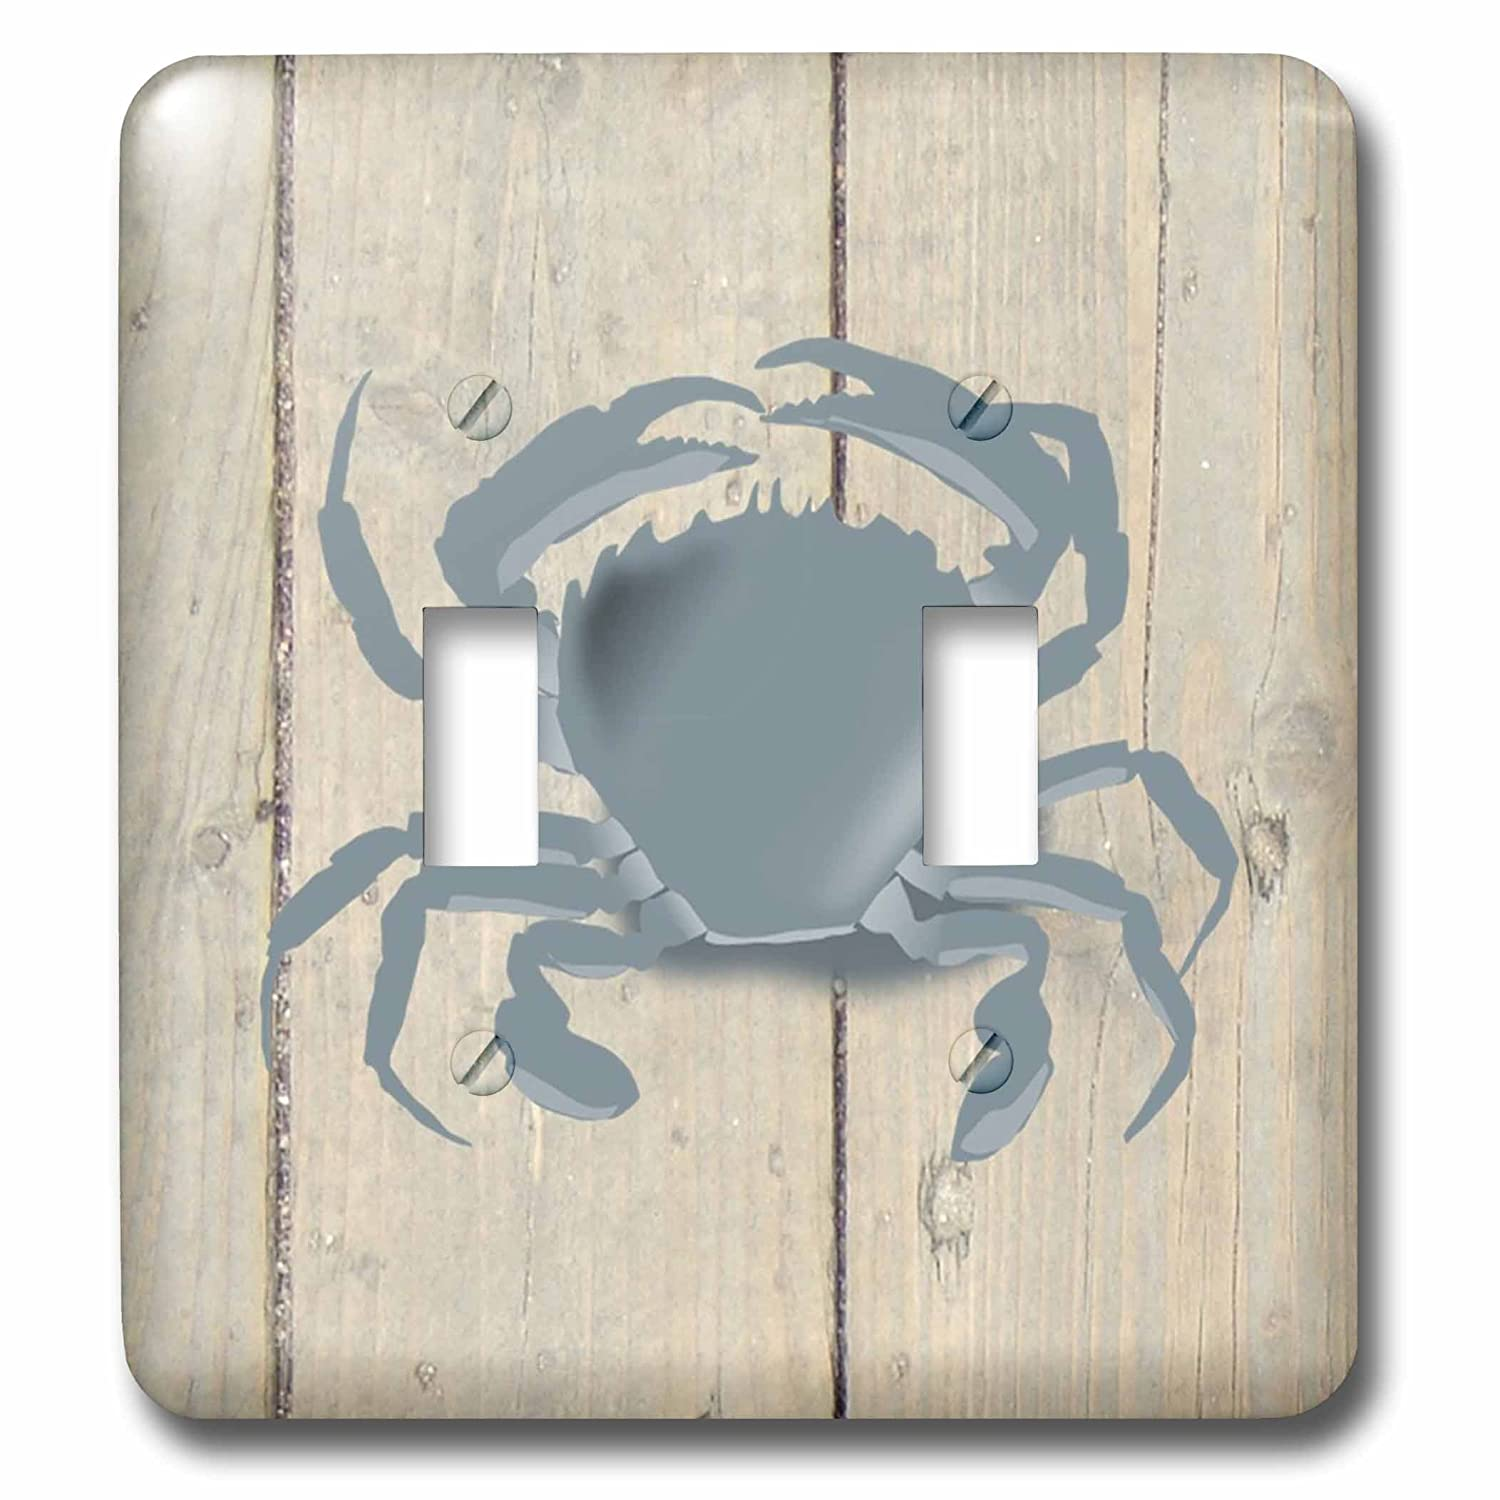 3D Rose LSP/_233752/_2 Image of Blue Crab On Weathered Planks Double Toggle Switch 3dRose